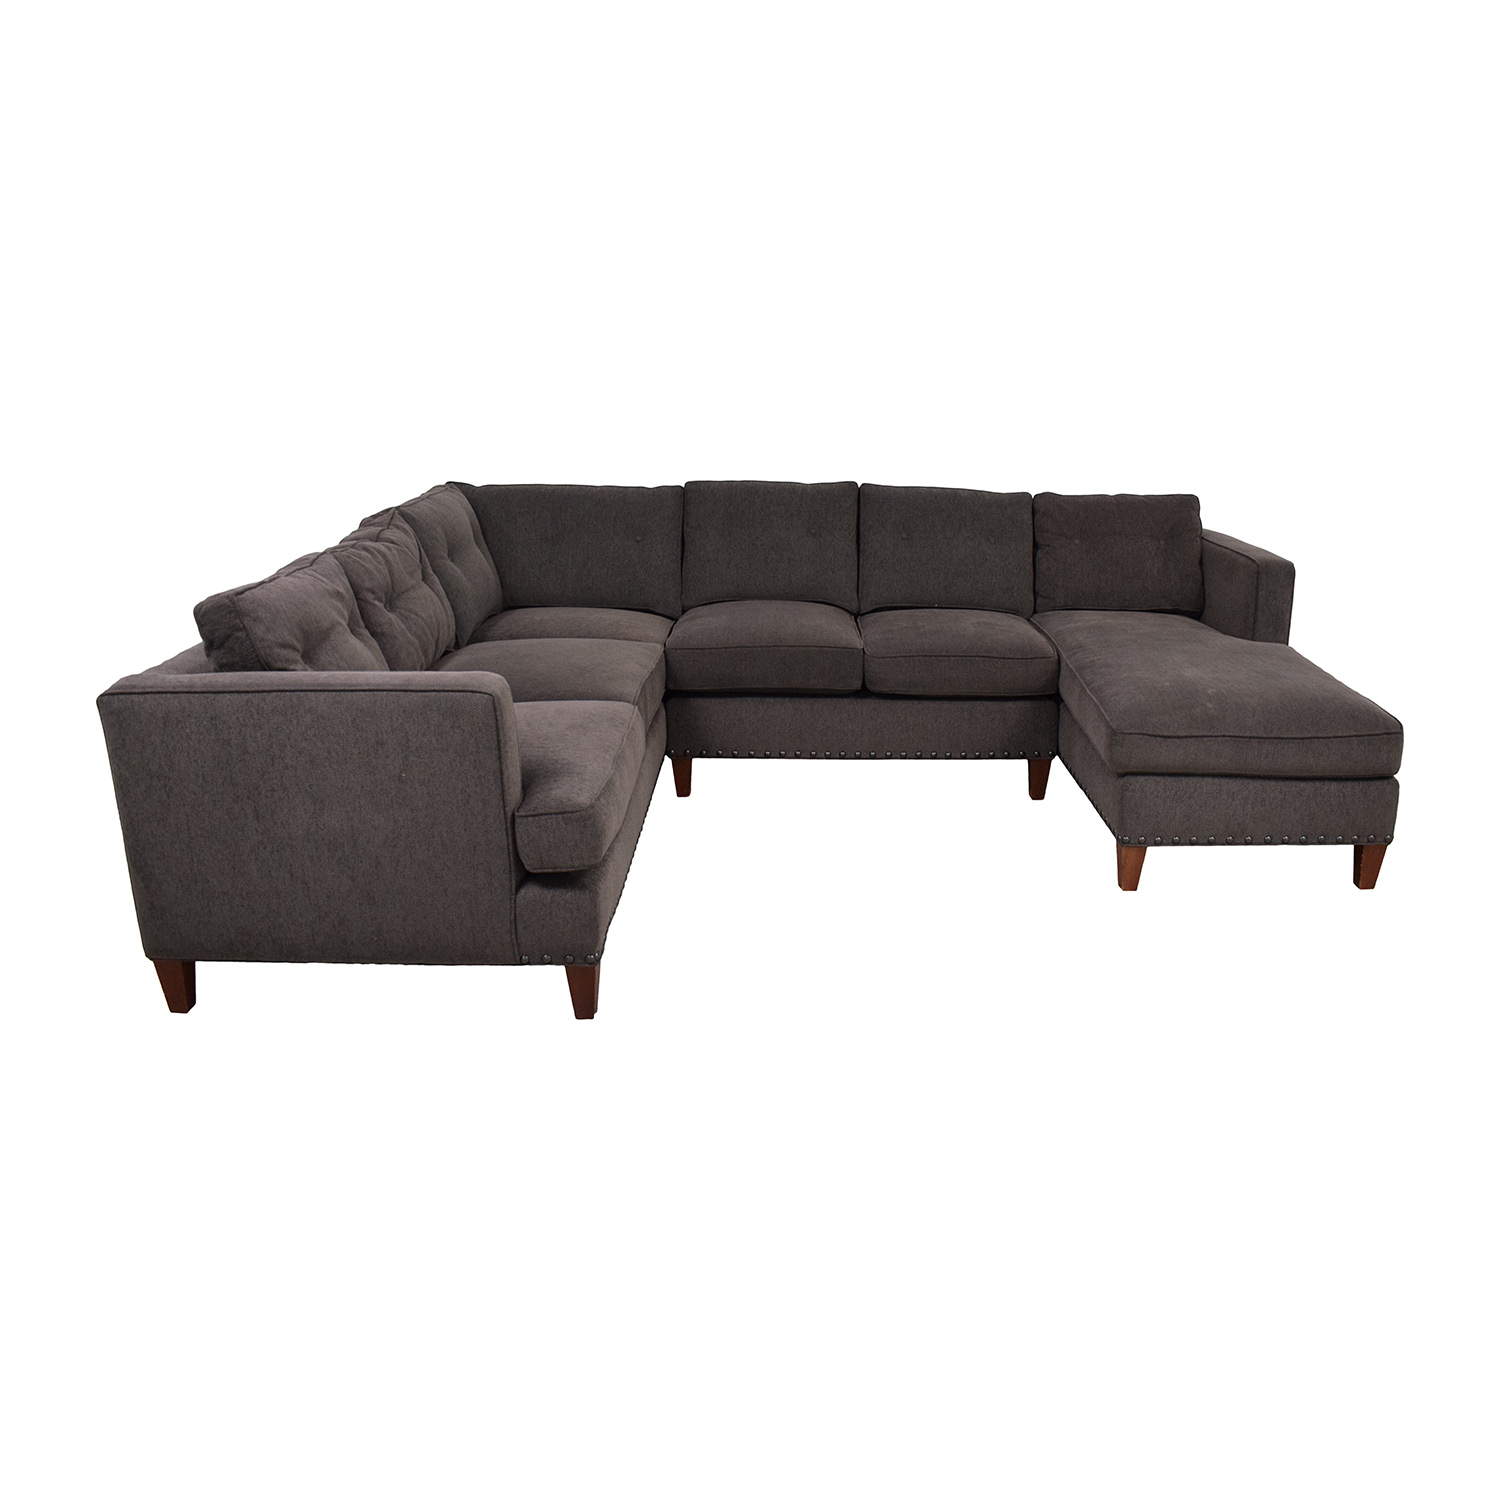 Strange 79 Off Arhaus Arhaus Garner Sectional Sofa Sofas Alphanode Cool Chair Designs And Ideas Alphanodeonline